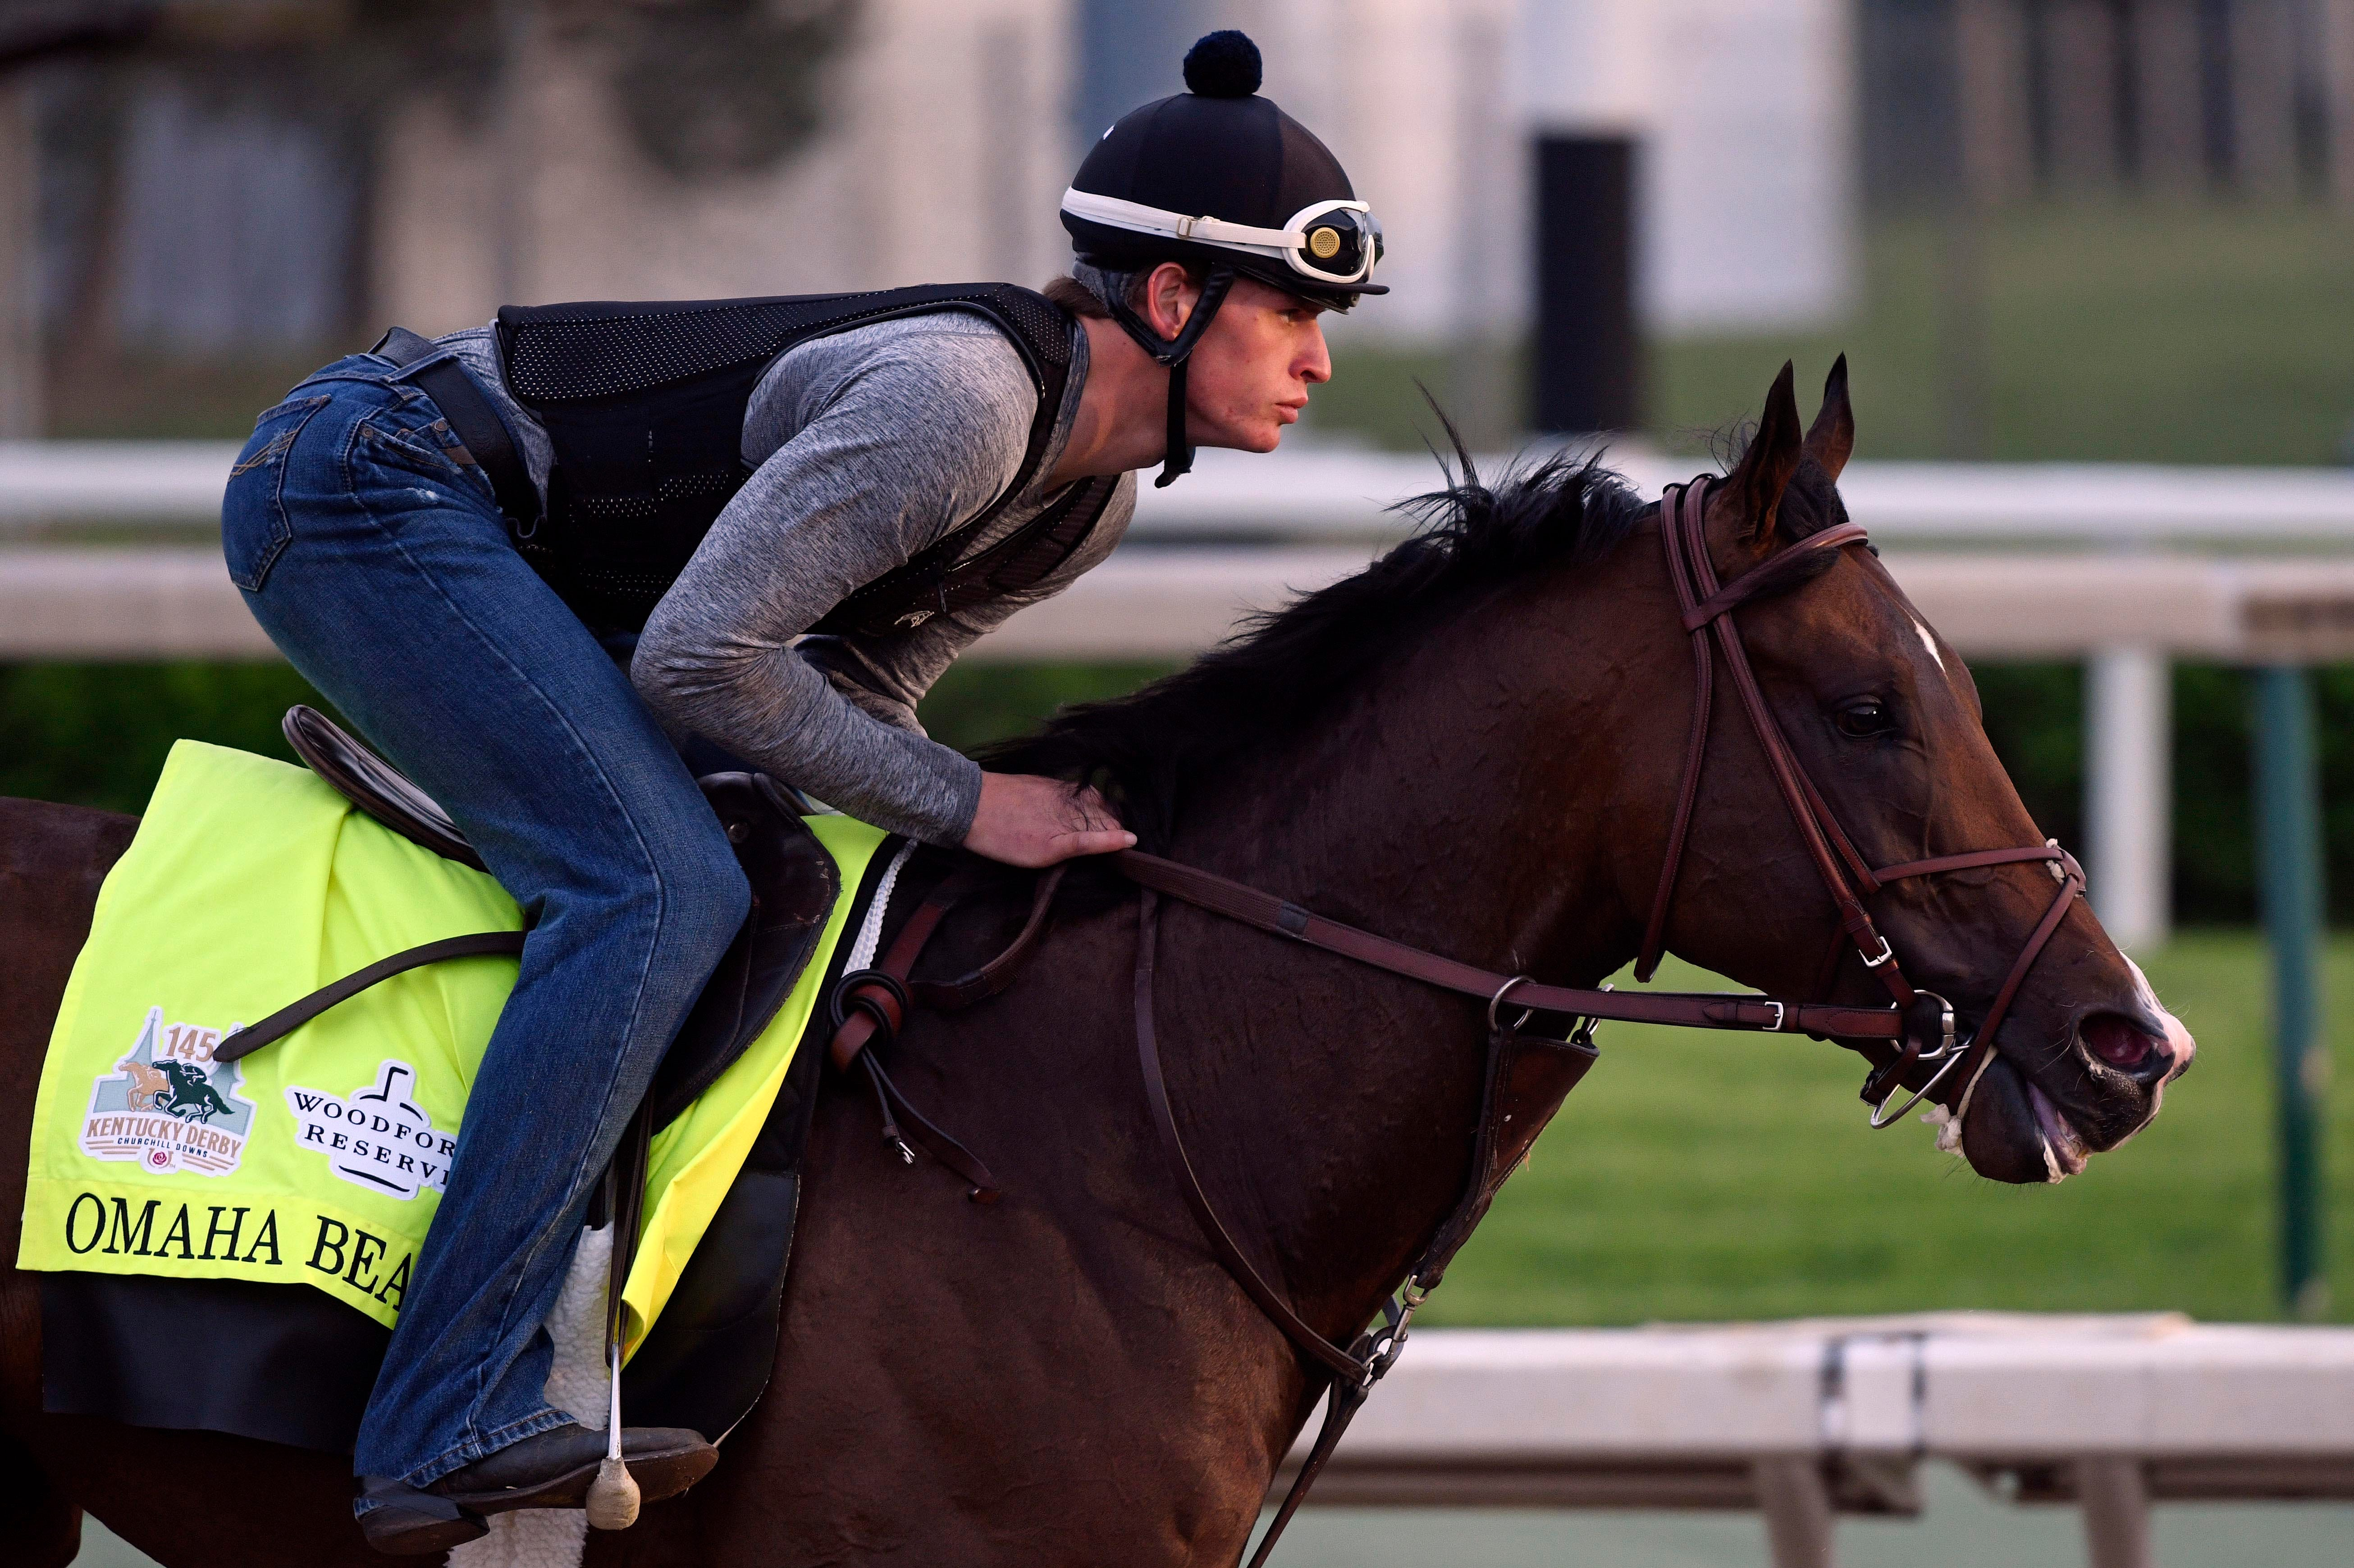 Kentucky Derby favorite Omaha Beach drops out of race due to health  condition